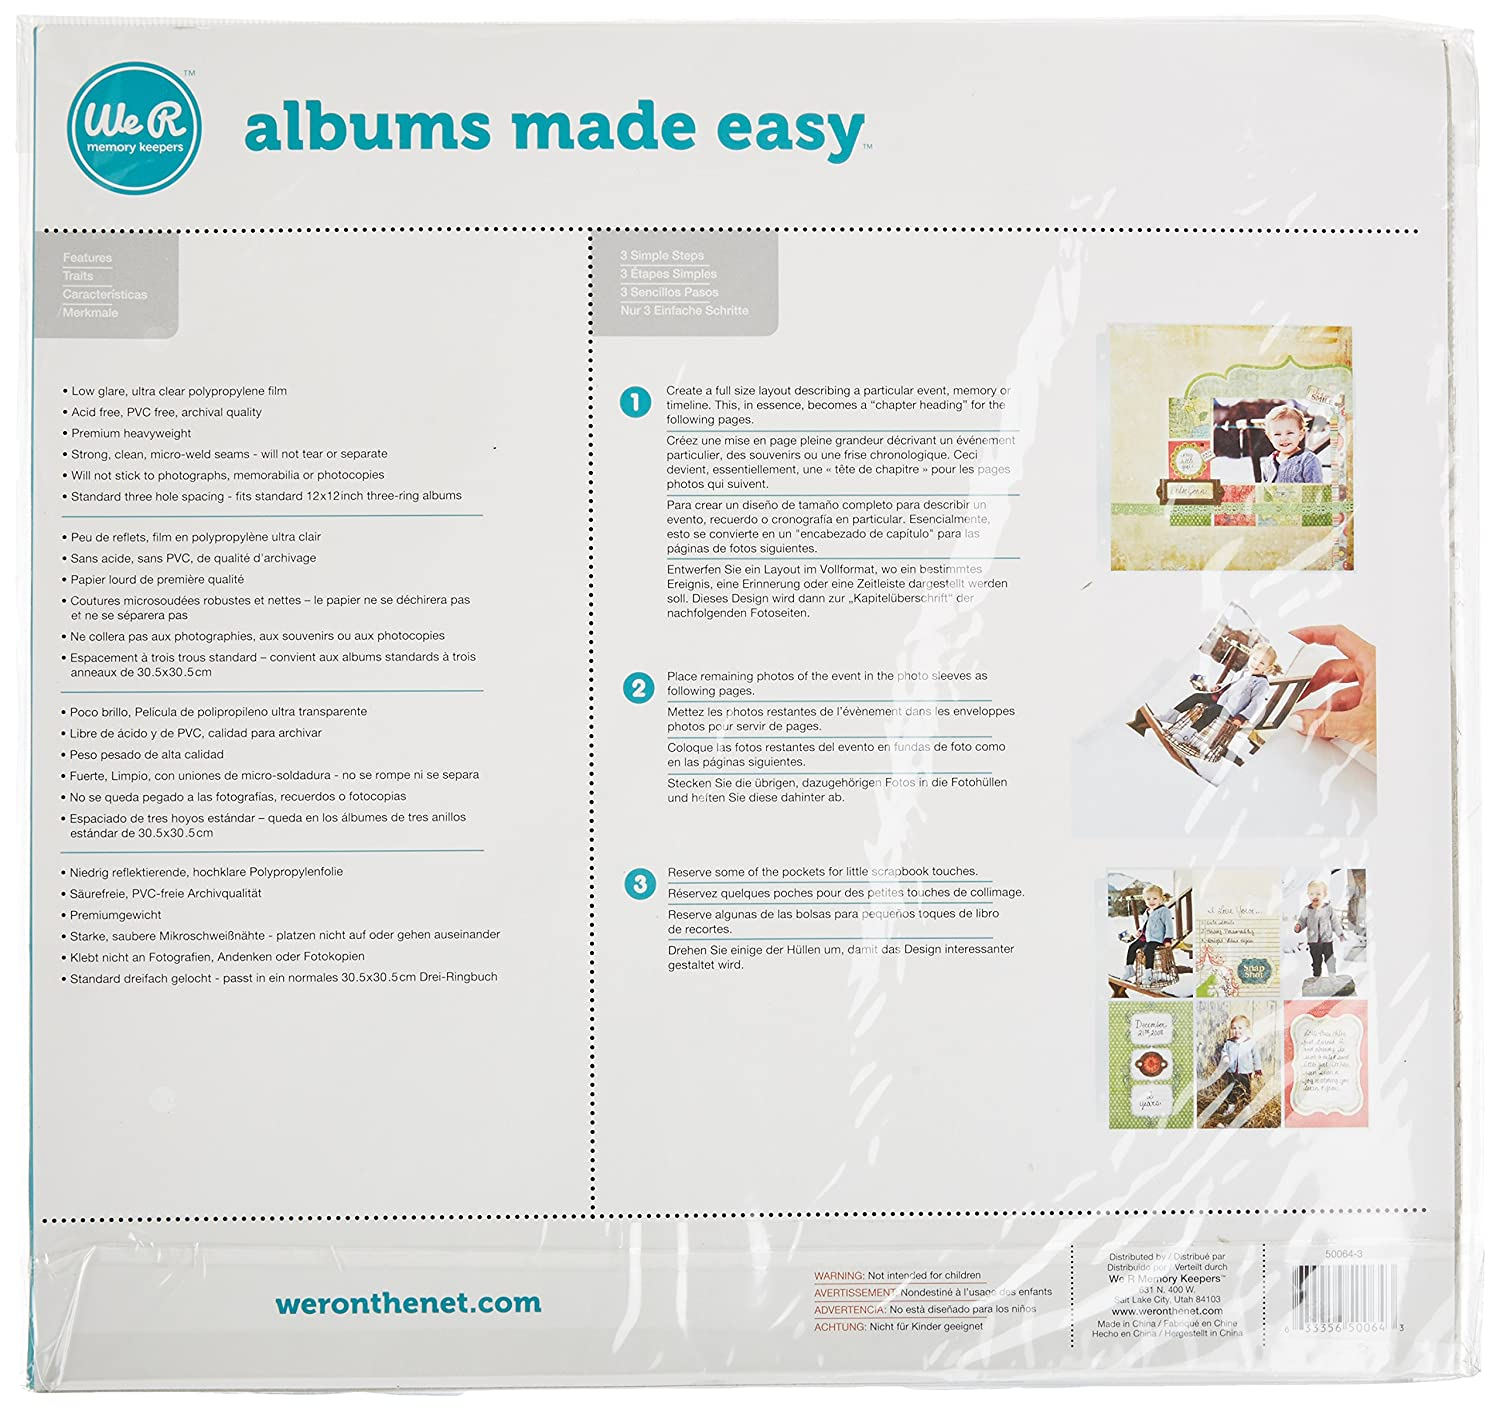 Amazon.com: We R Memory Keepers 12 x 12 inch (4-4 x 6 Inch pockets) 3-Ring Album Photo Sleeve Protectors, 10 PK: Arts, Crafts & Sewing